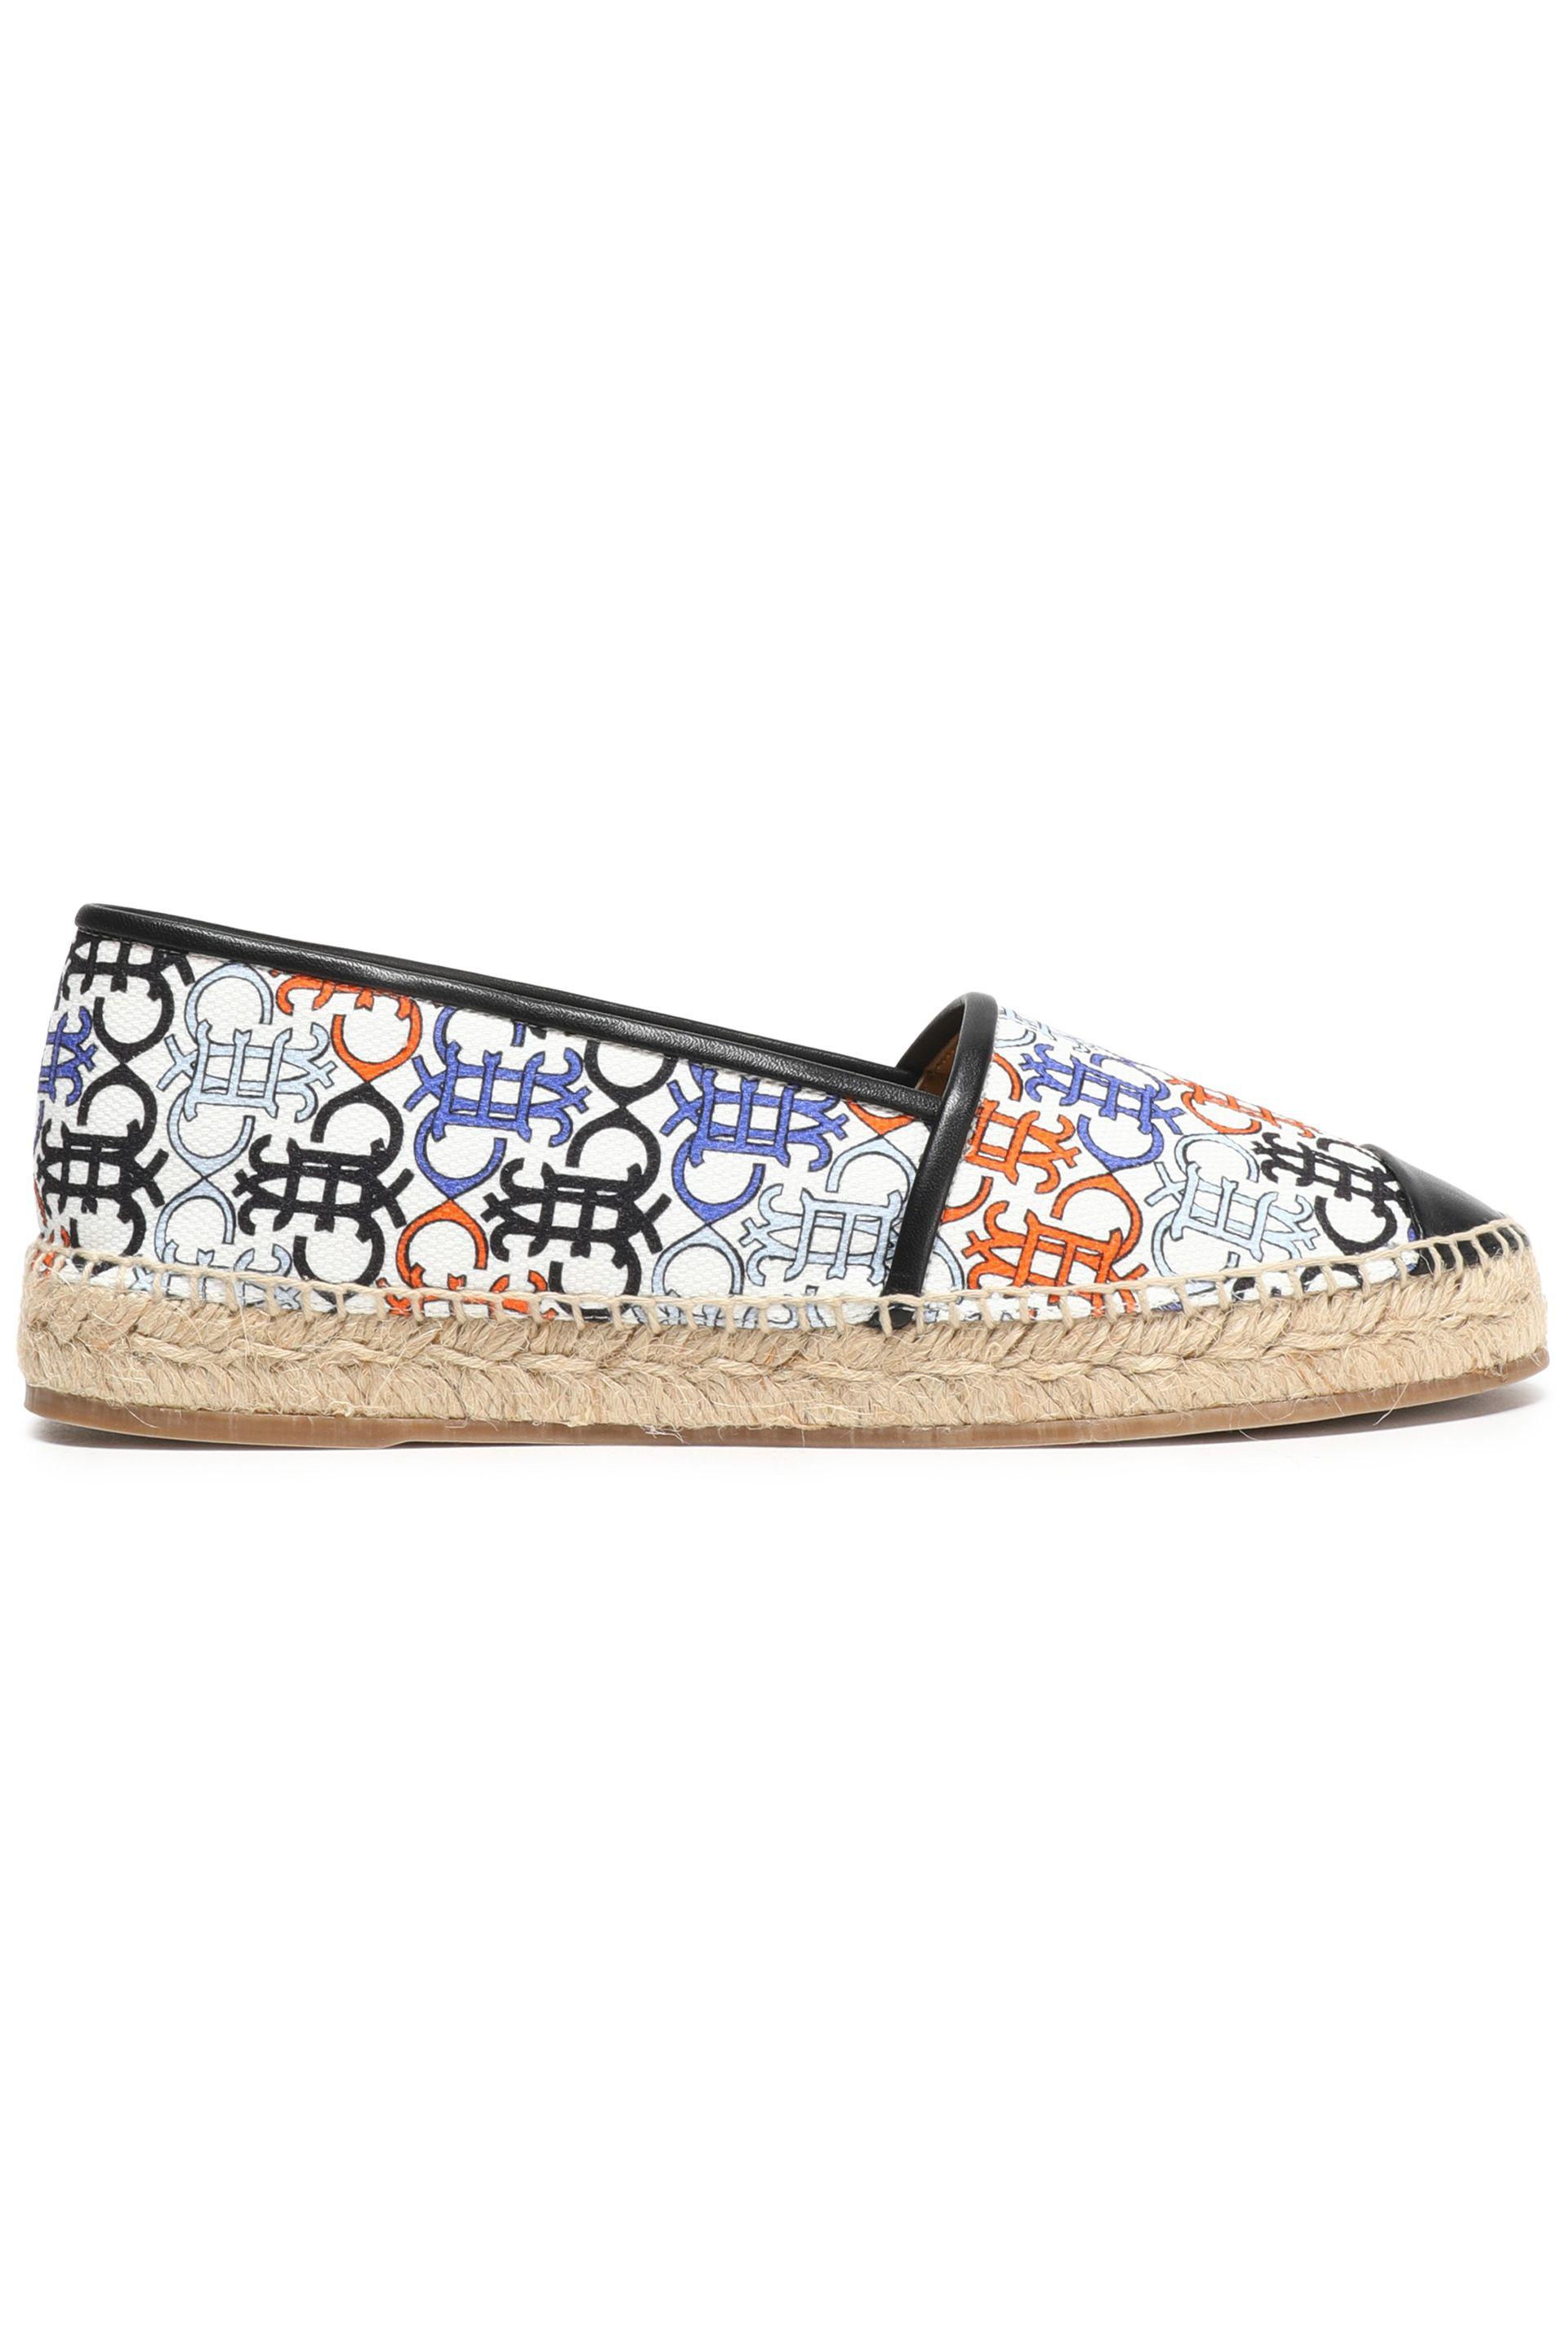 Emilio Pucci Printed Flatform Espadrilles cheap browse clearance 2014 new latest for sale with paypal free shipping Manchester gEigDFdL